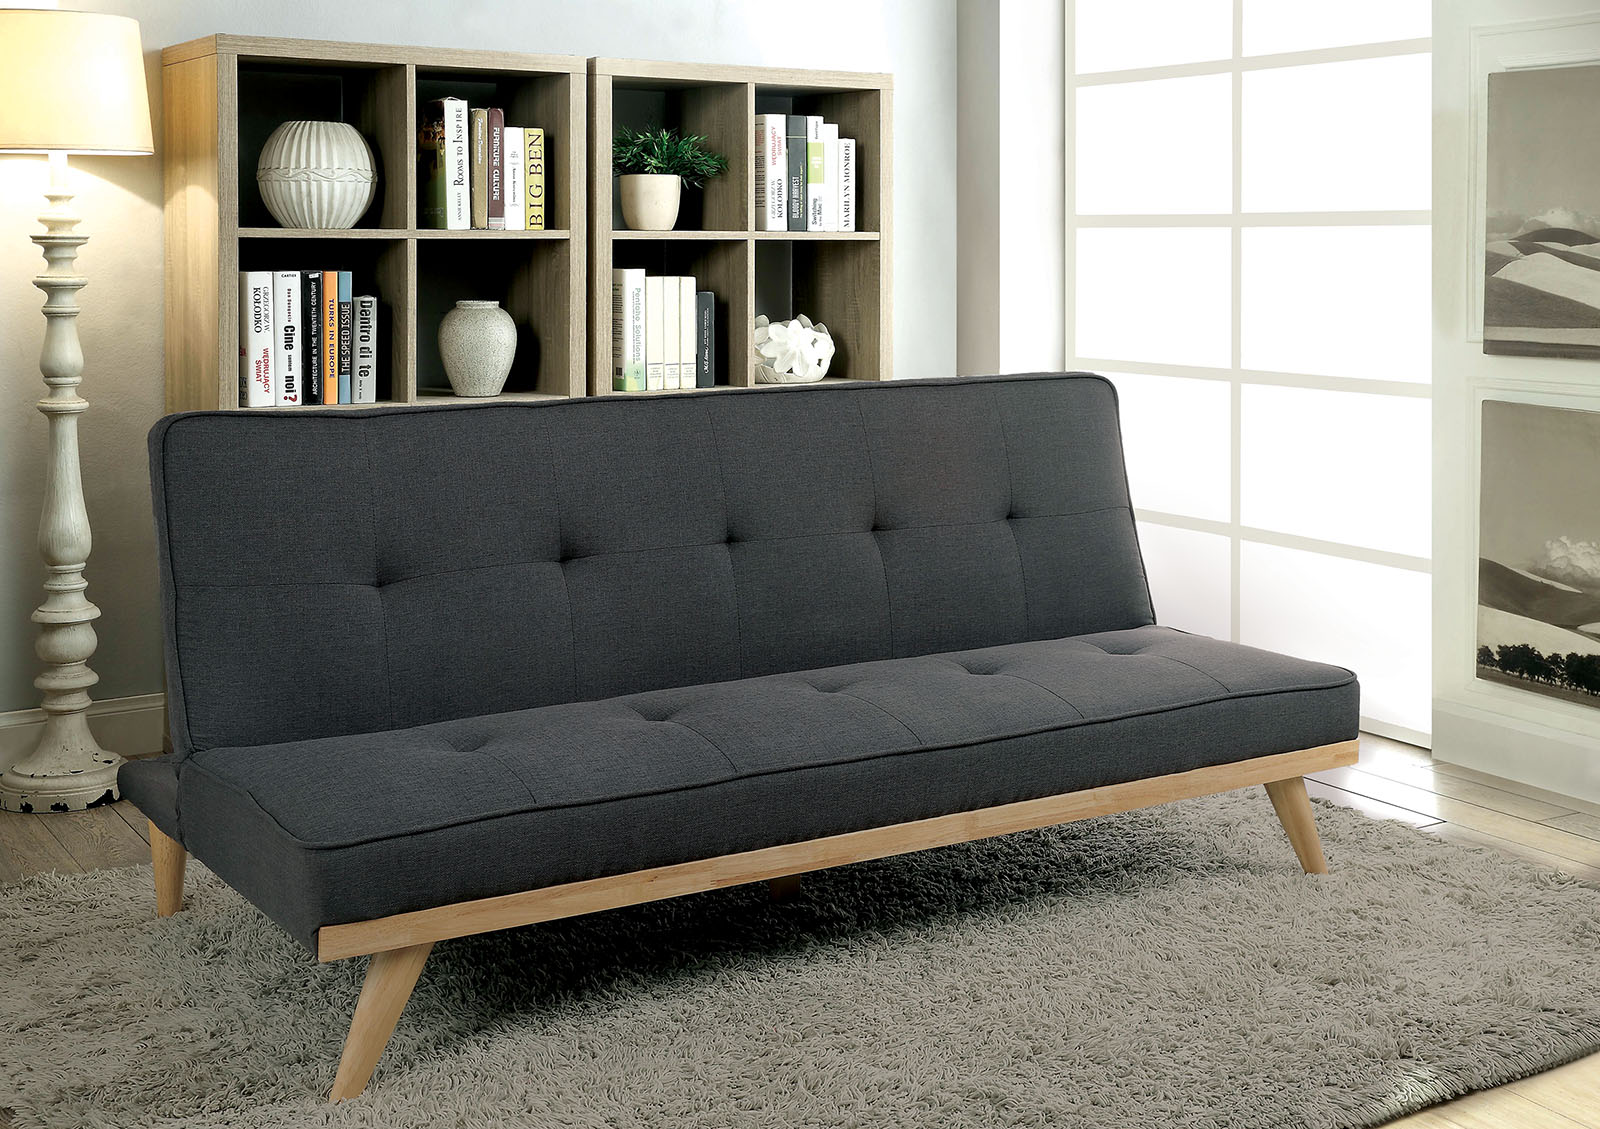 Furniture of America 2441GY Gray Mid Century Modern Futon Sofa Bed